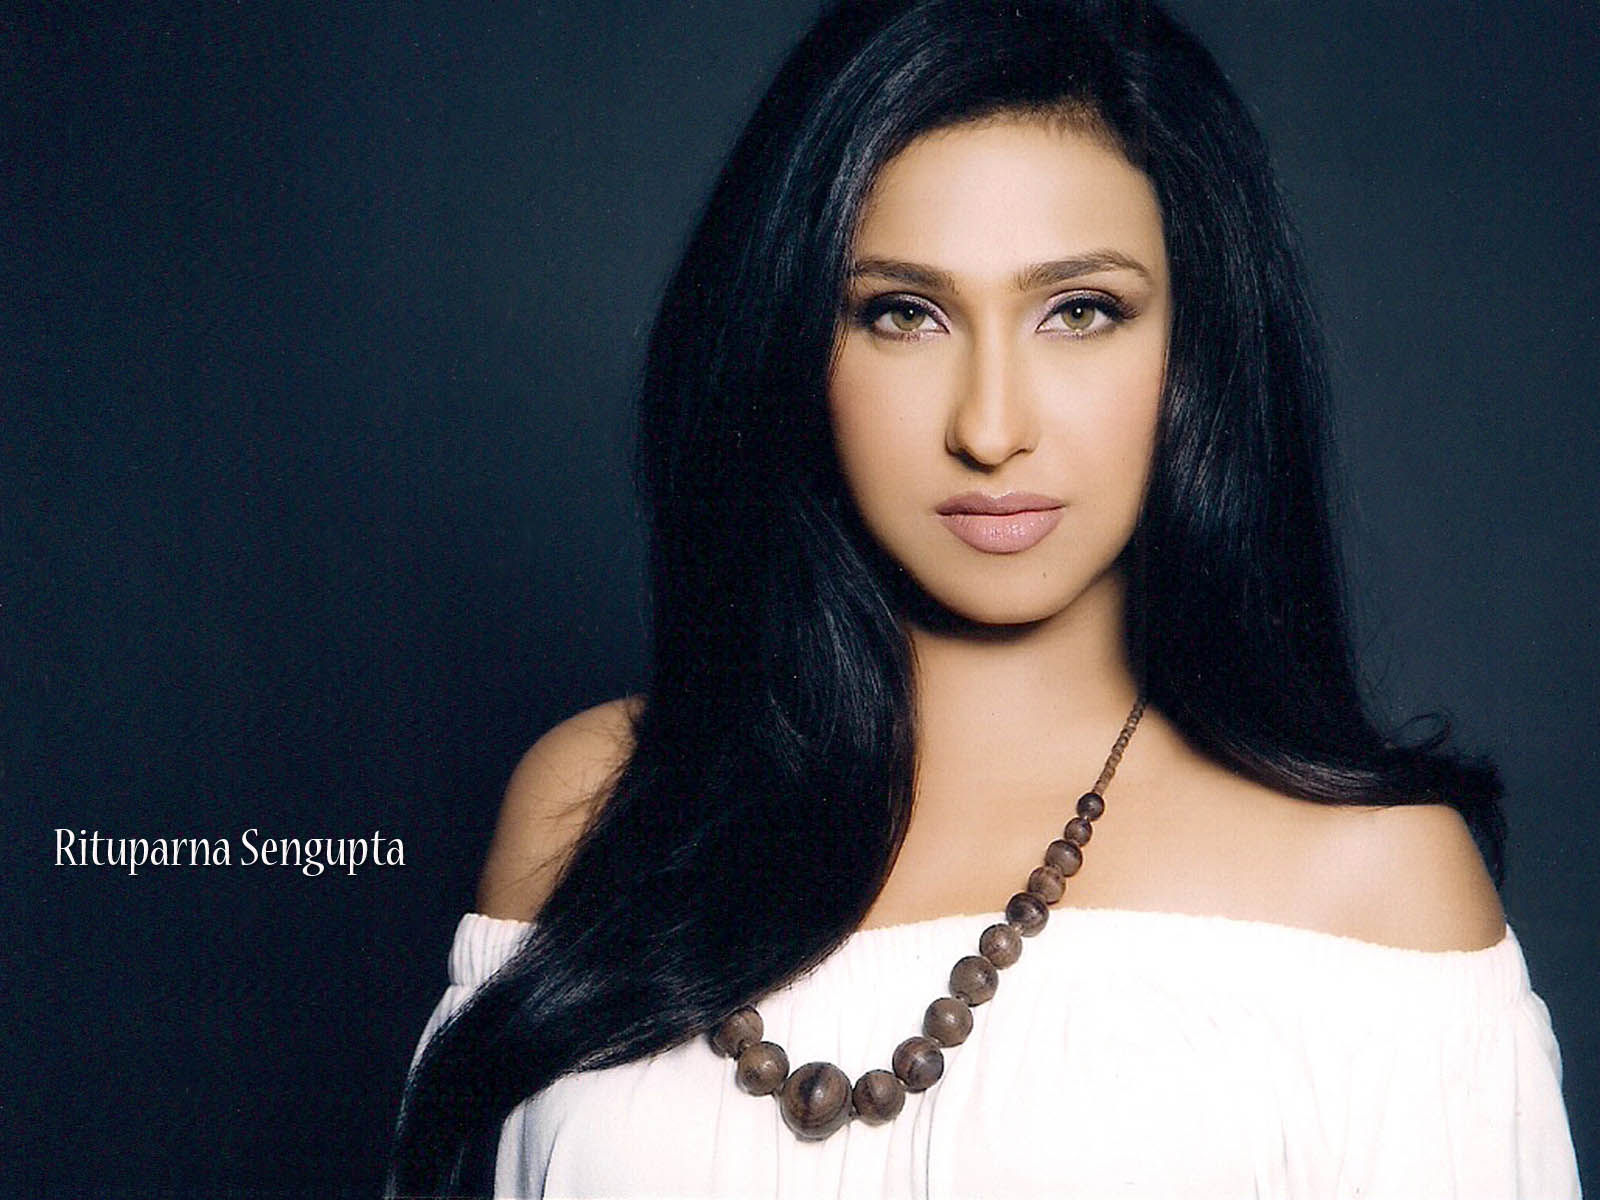 Rituparna%252BSengupta%252BWallpaper Top undergarments and Bra types best top girls hot babes wallpaper sexy babes wallpapers hd 6adriana lima sexy figure normal nude boobs sexy bra red black green skin color m4 3 Free Porn Tags: 'Free Forced